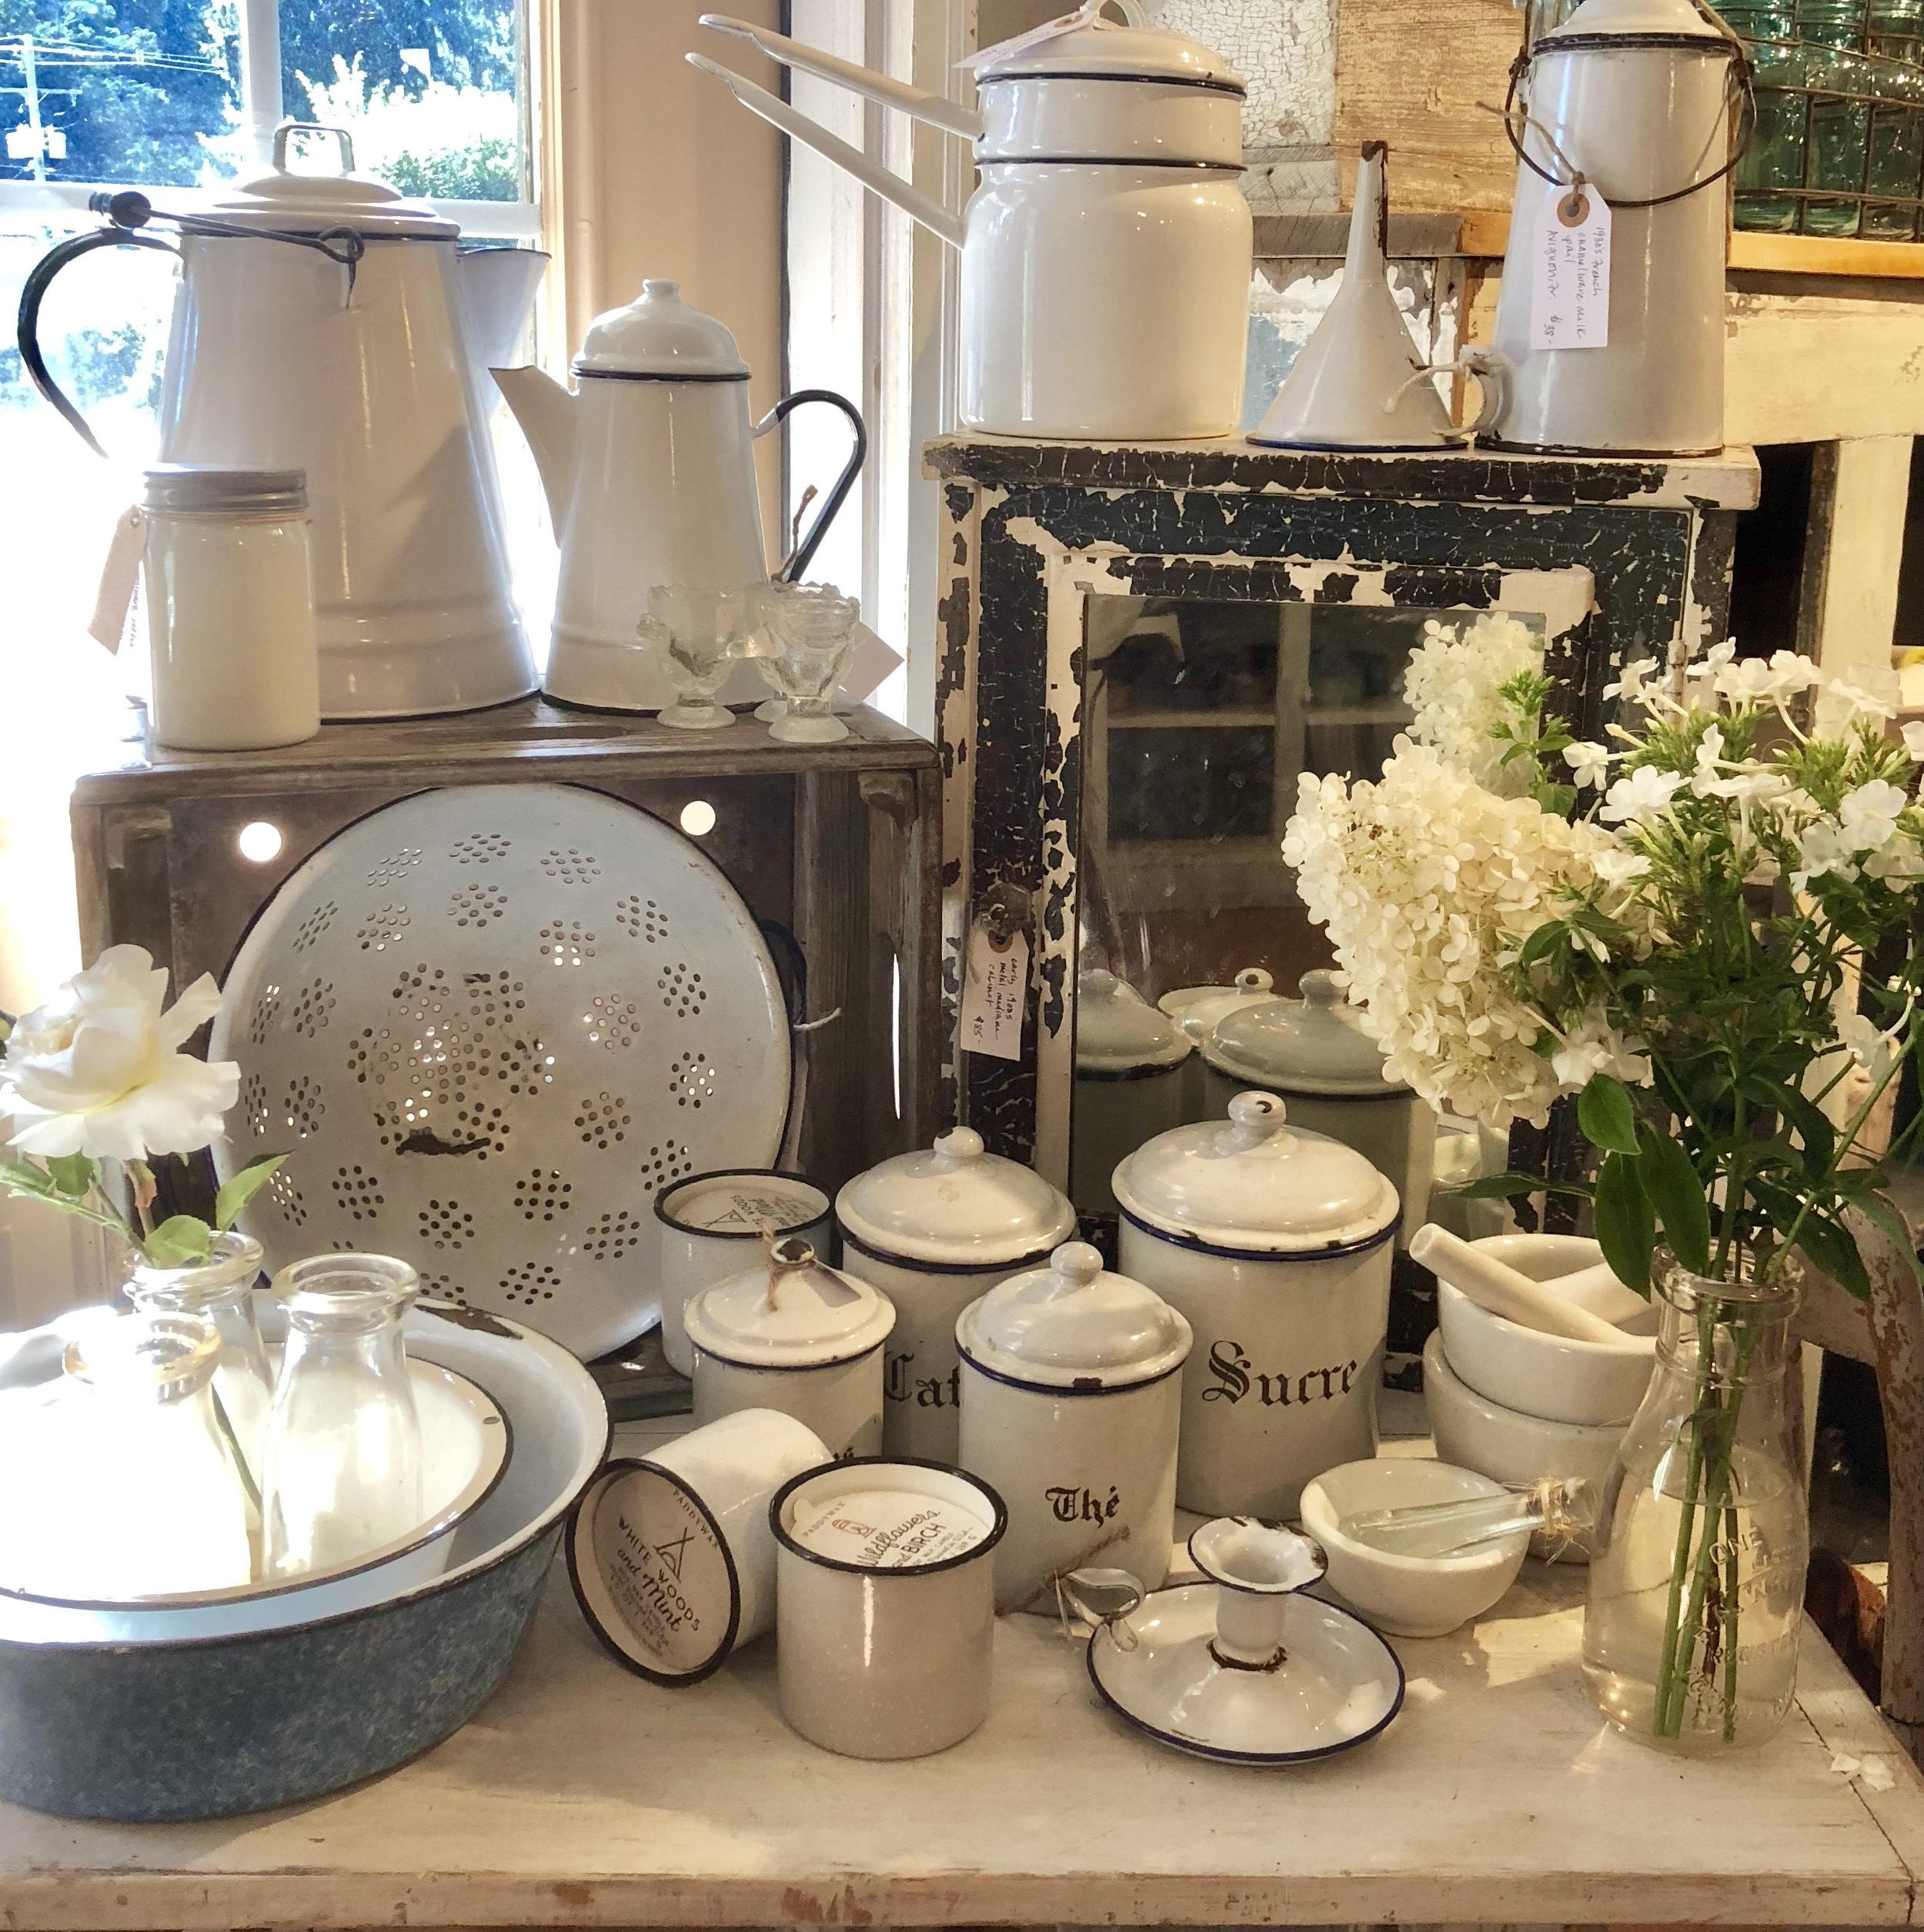 English and French Enamelware